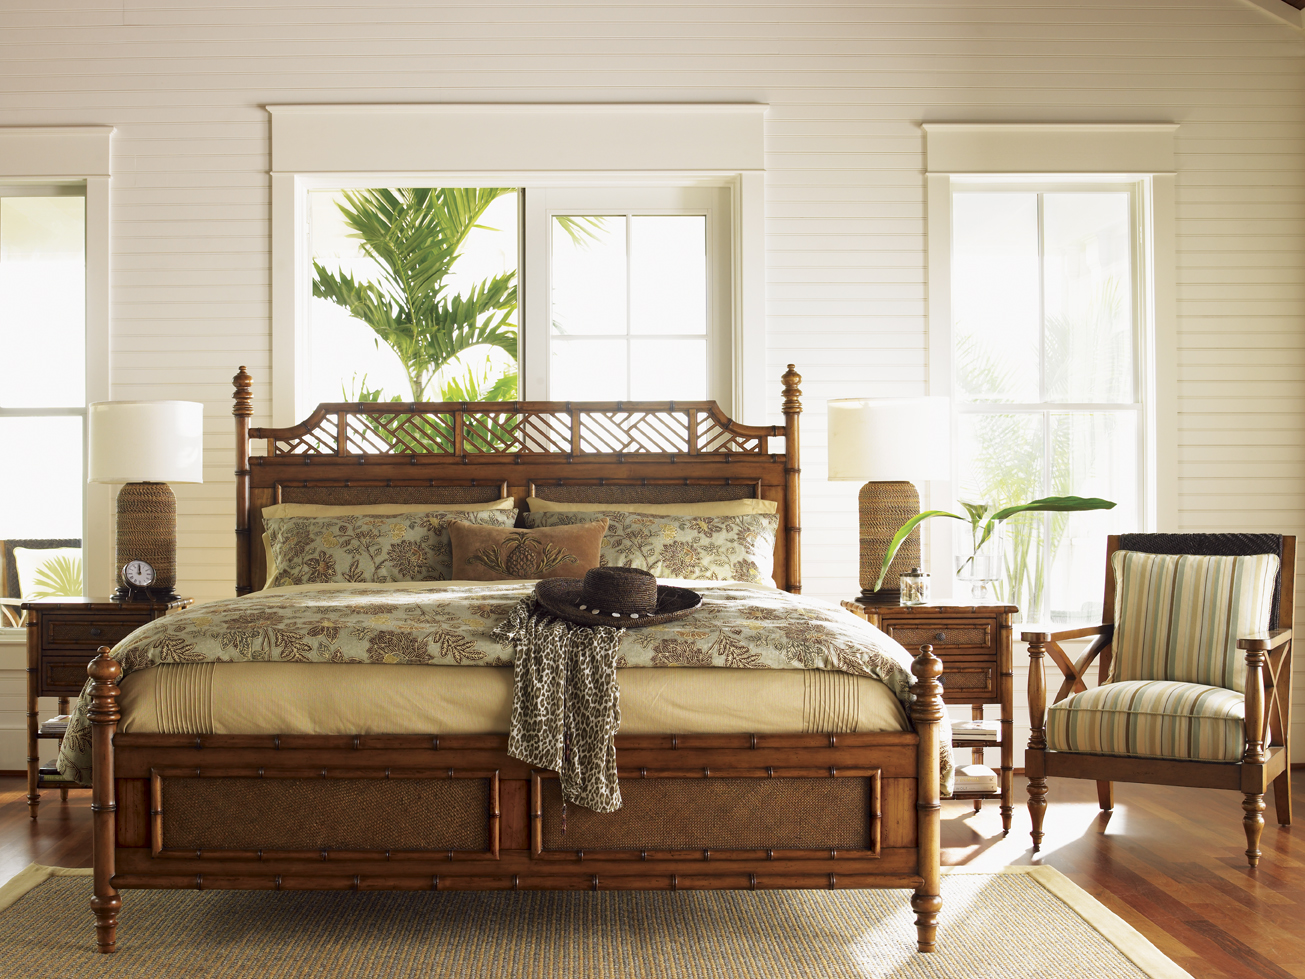 Tropical Styled Bed